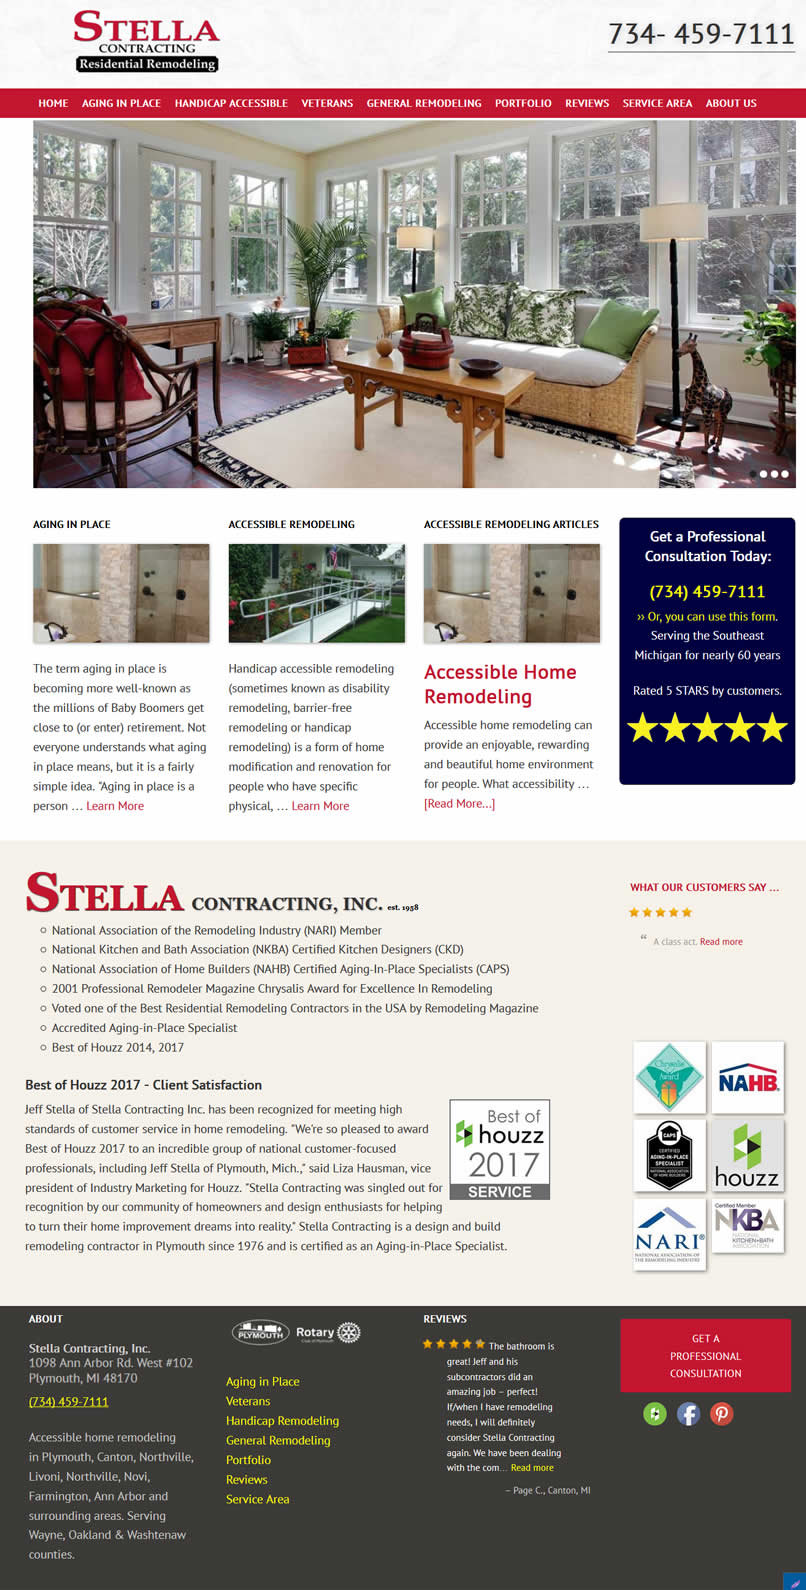 Stella Contracting, Inc. website